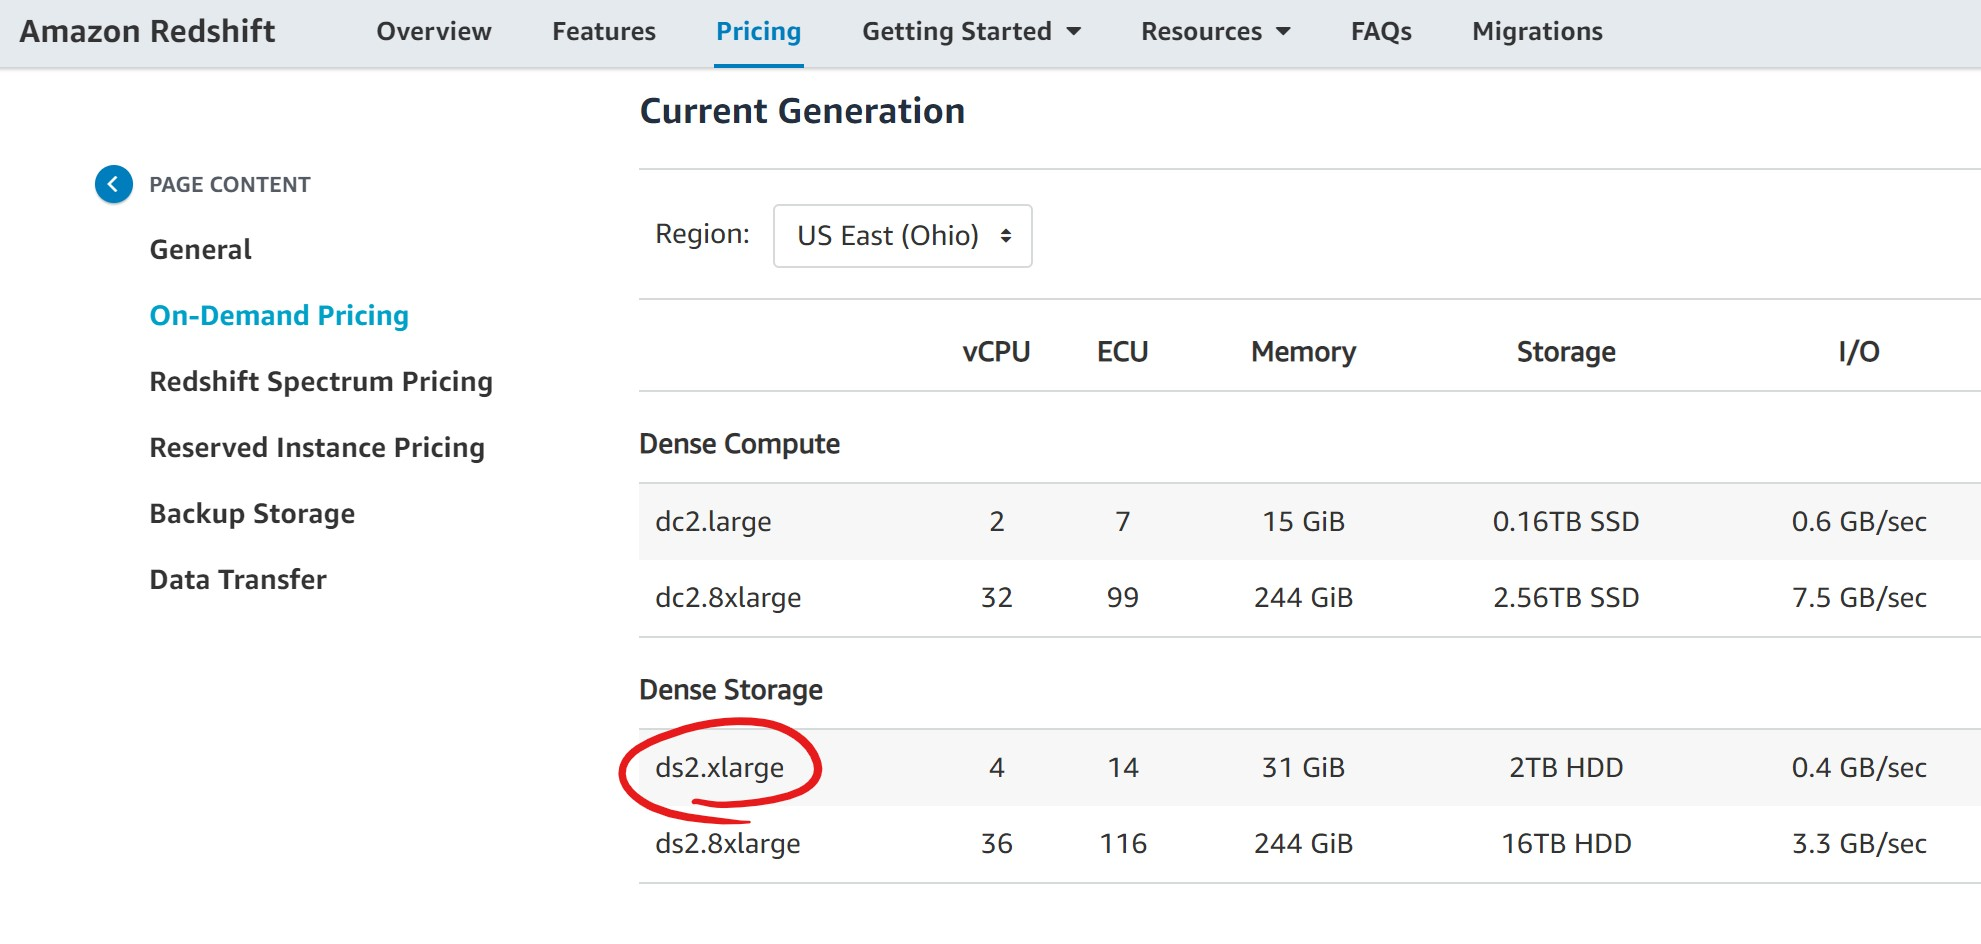 Is AWS retiring the ds2.xlarge Redshift node type?